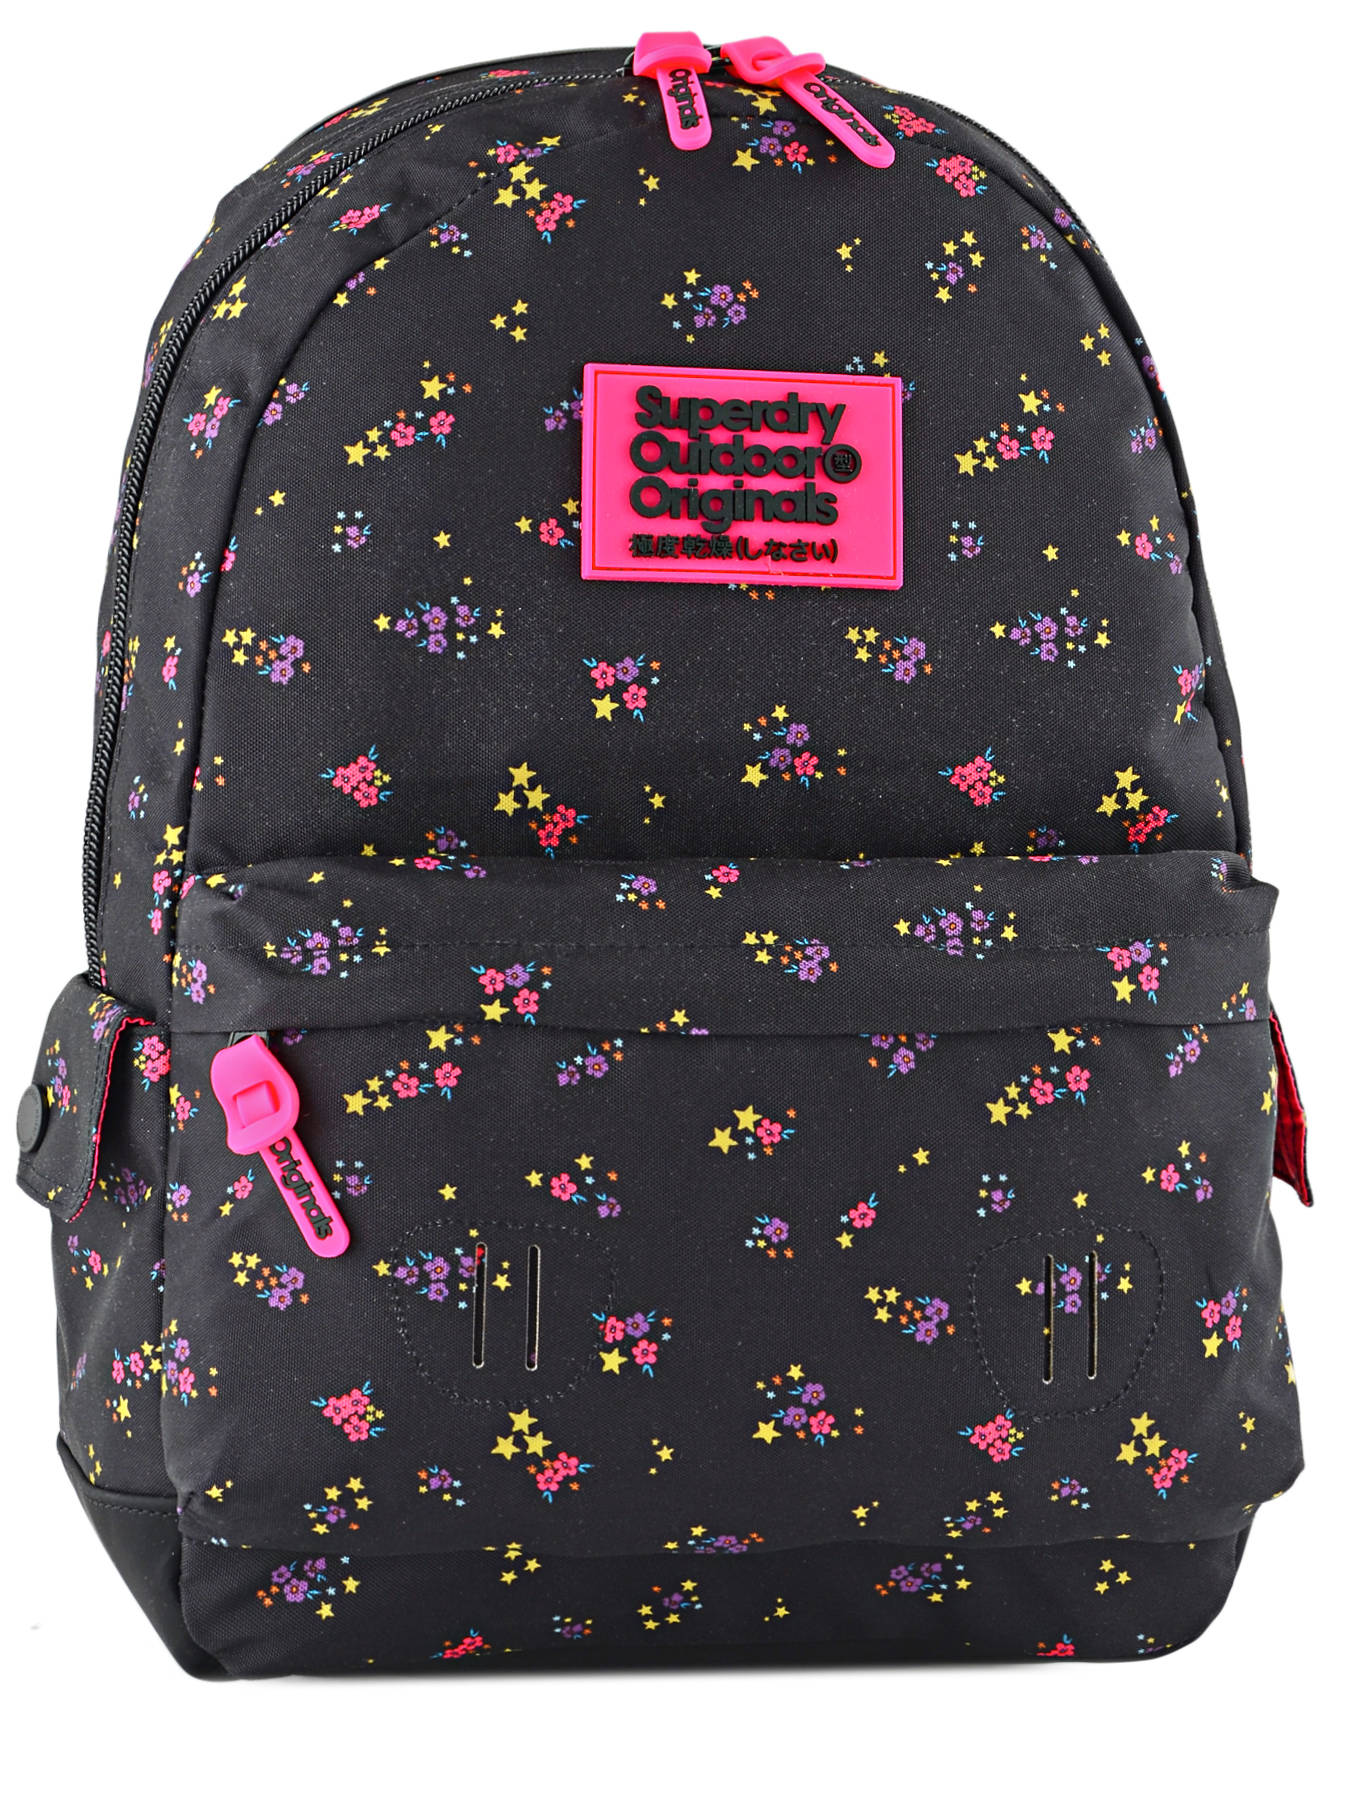 3b8d2617e53 ... Rugzak 1 Compartiment Superdry Zwart backpack woomen G91001NP ...